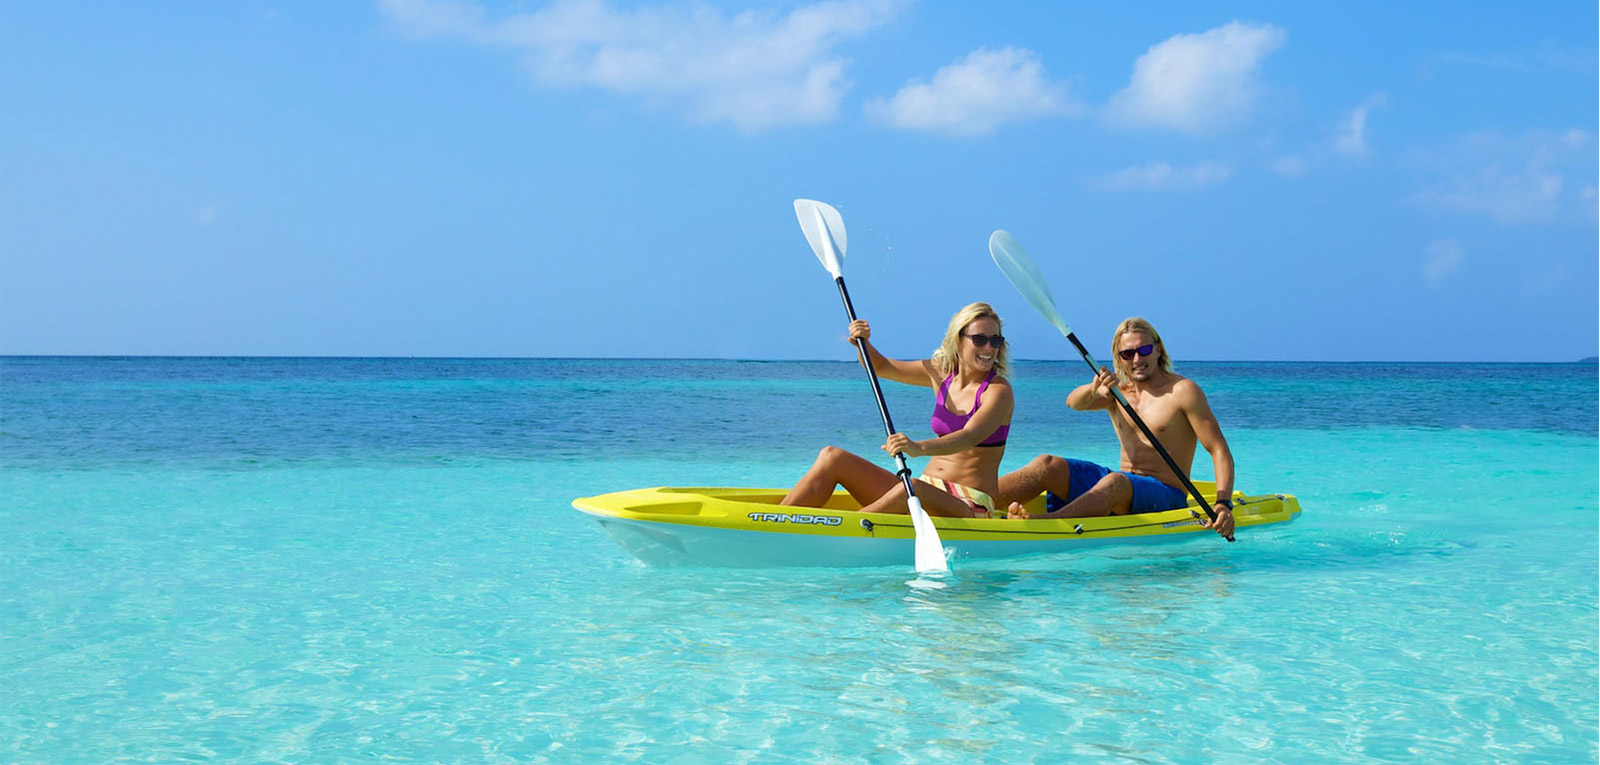 Paradise Island Resort Maldives Activities